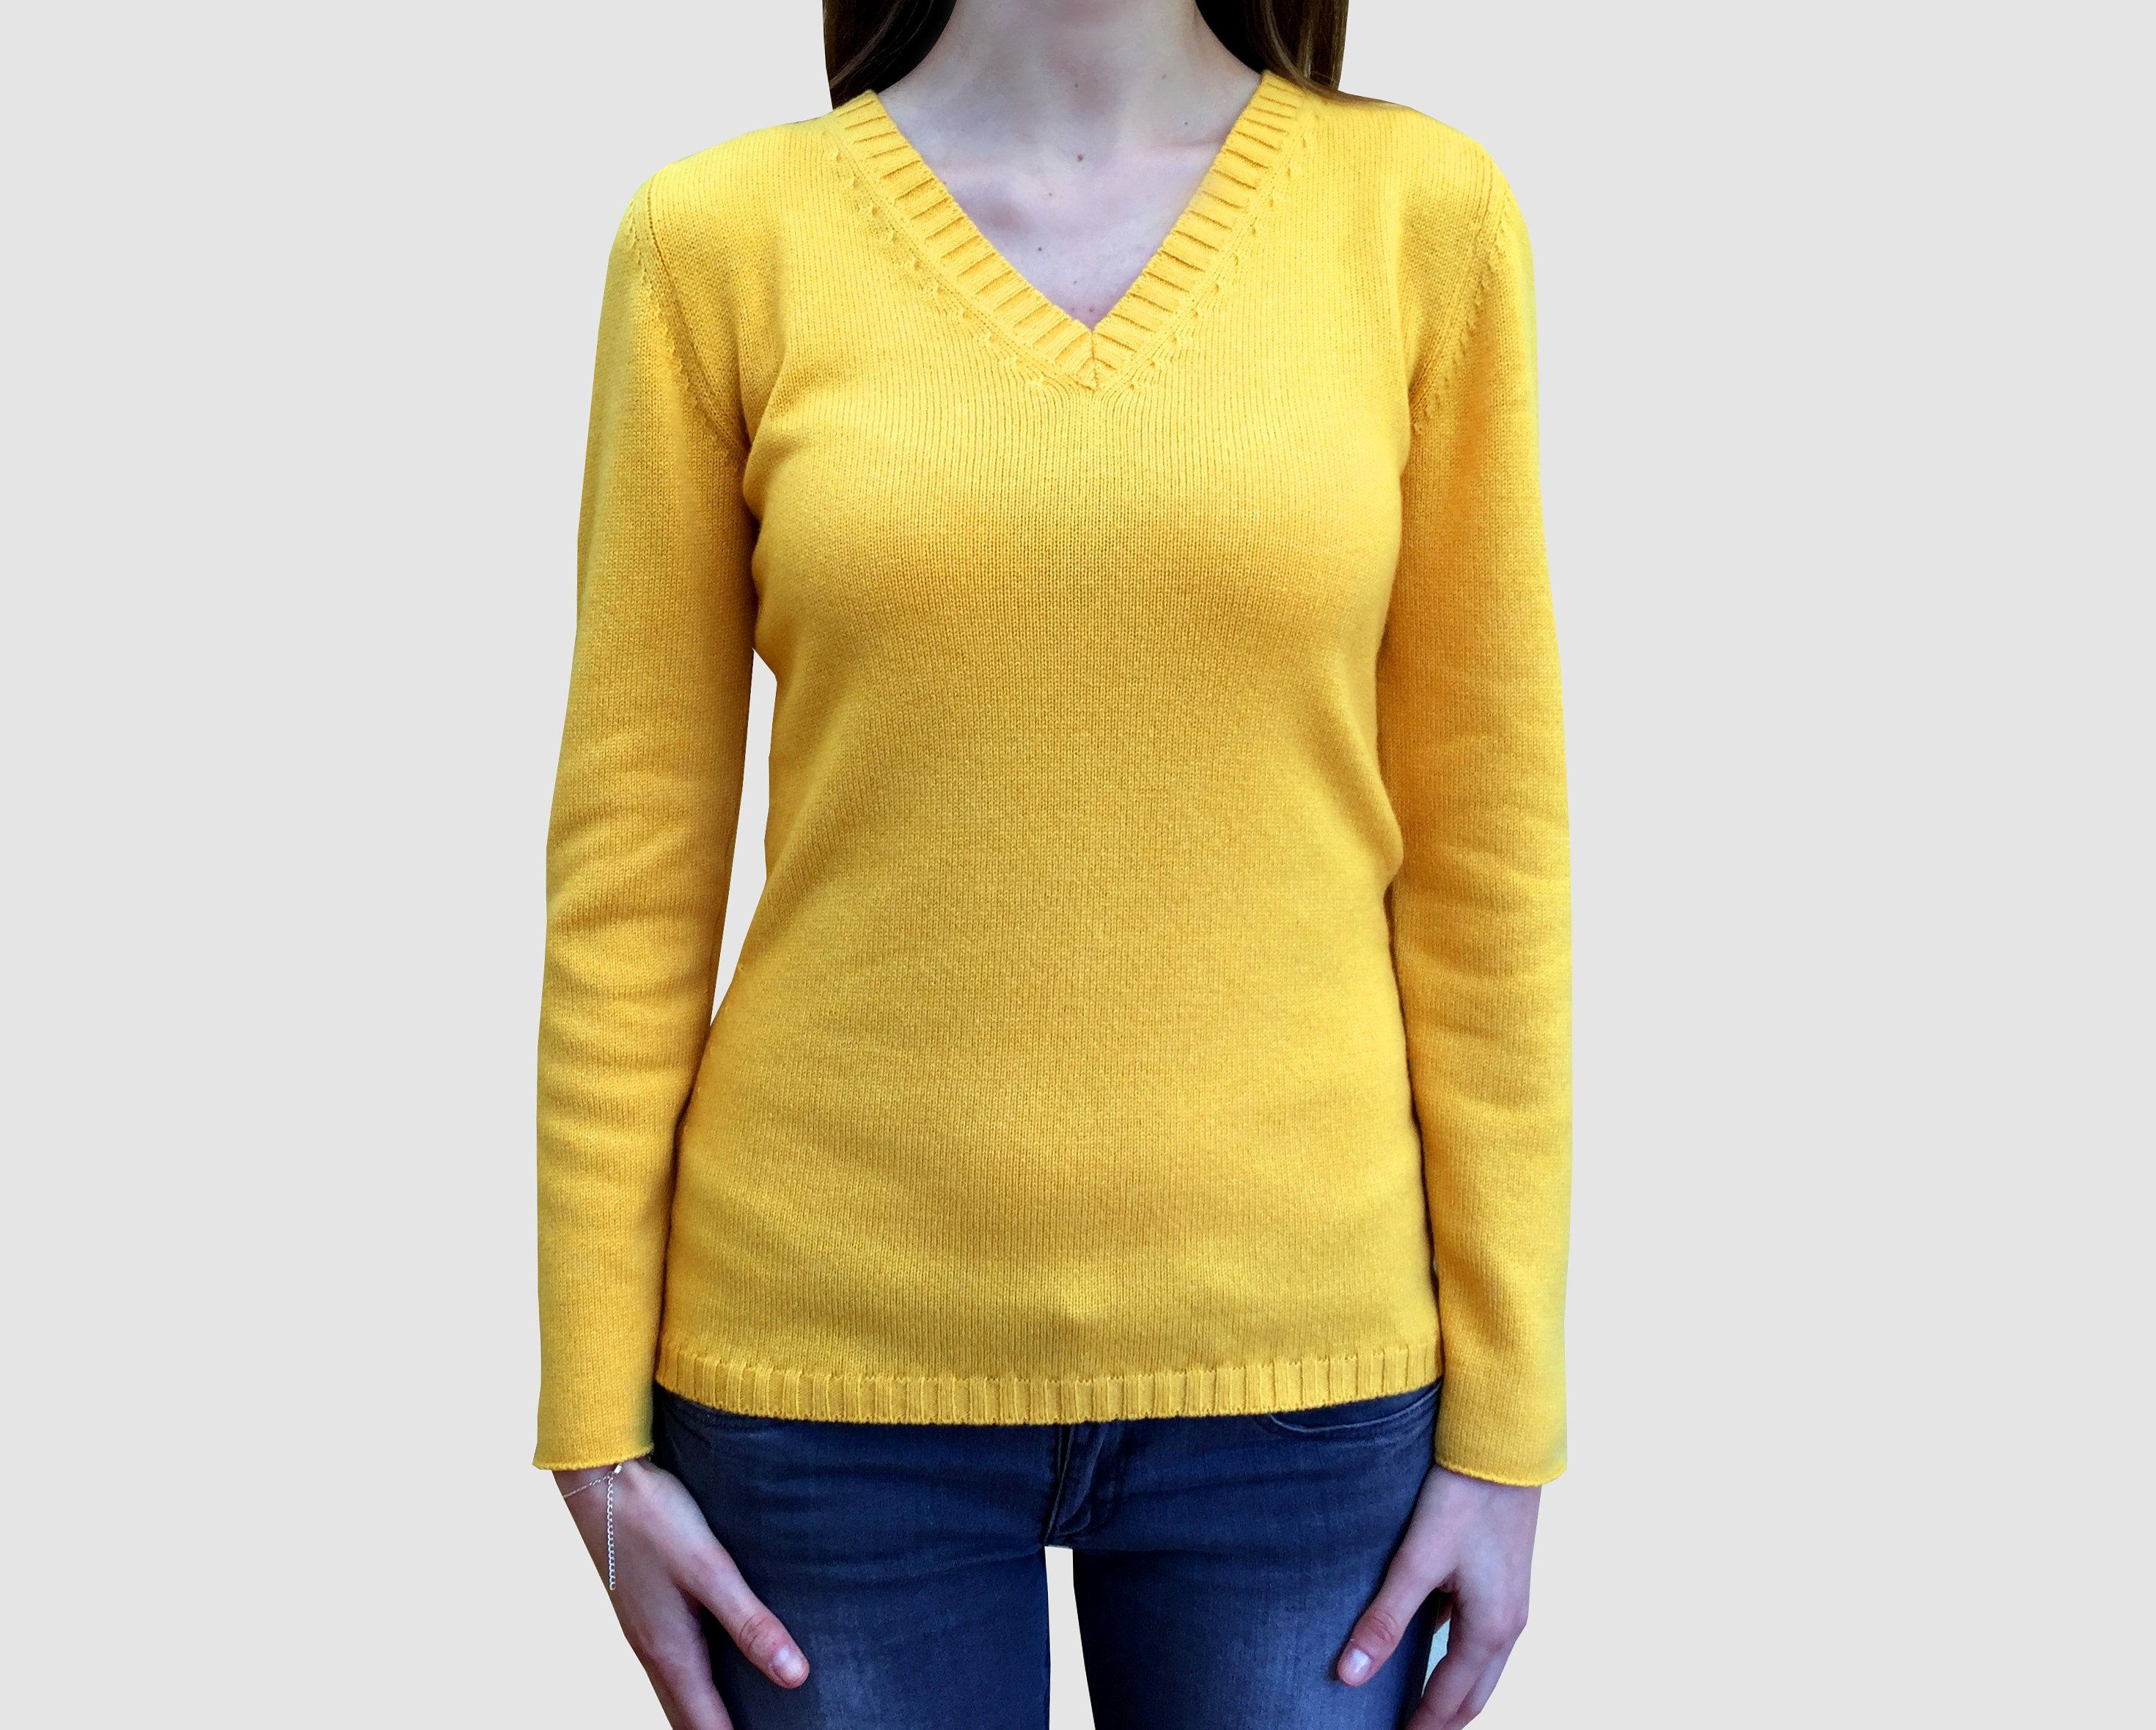 cheap for discount 53ee9 7a1d4 Cashmere v neck, cashmere sweater, cashmere pullover ...